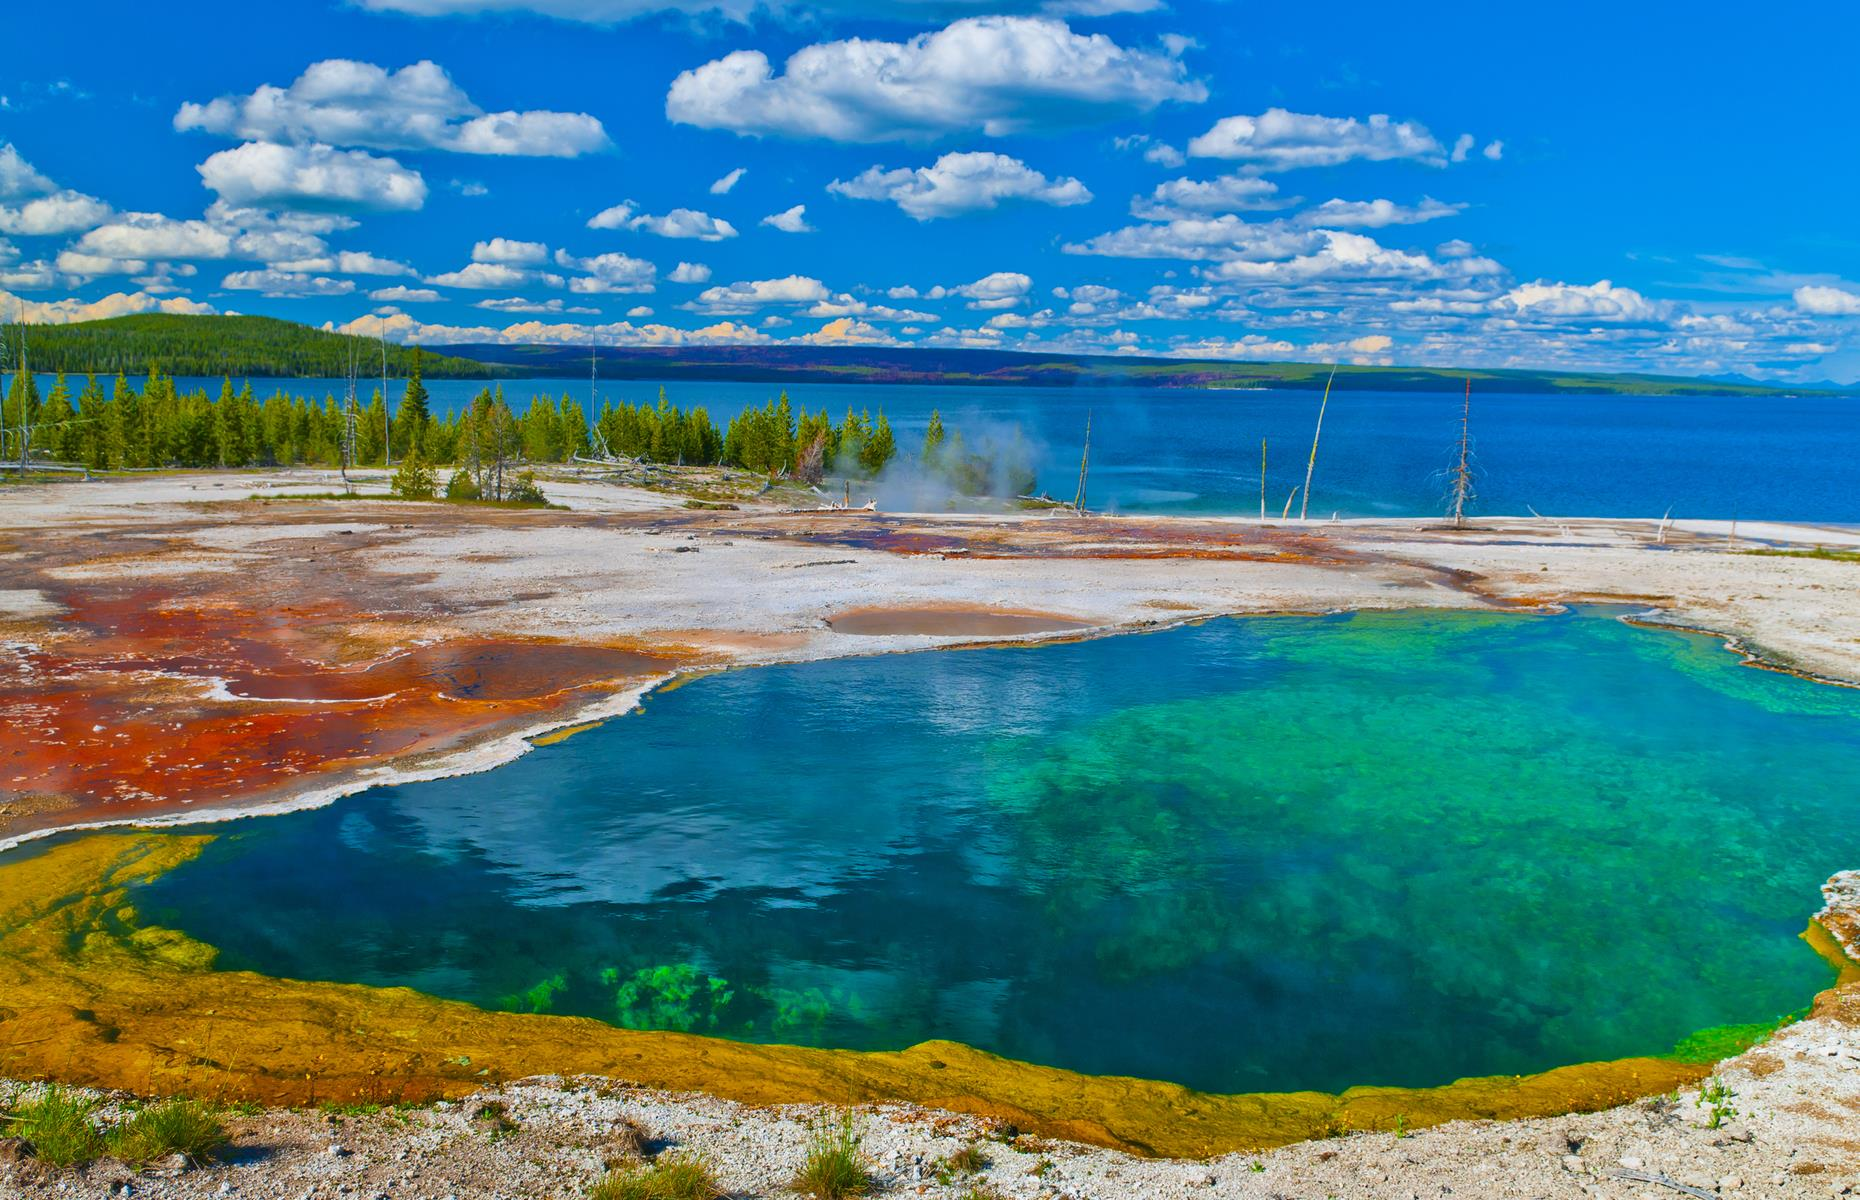 Slide 4 of 31: Vast Yellowstone Lake freezes completely in winter and thaws in late spring, but it's strikingly beautiful at any time of year. Bordered by Yellowstone National Park's vivid geothermal springs, its shimmering surface conceals hidden depths....